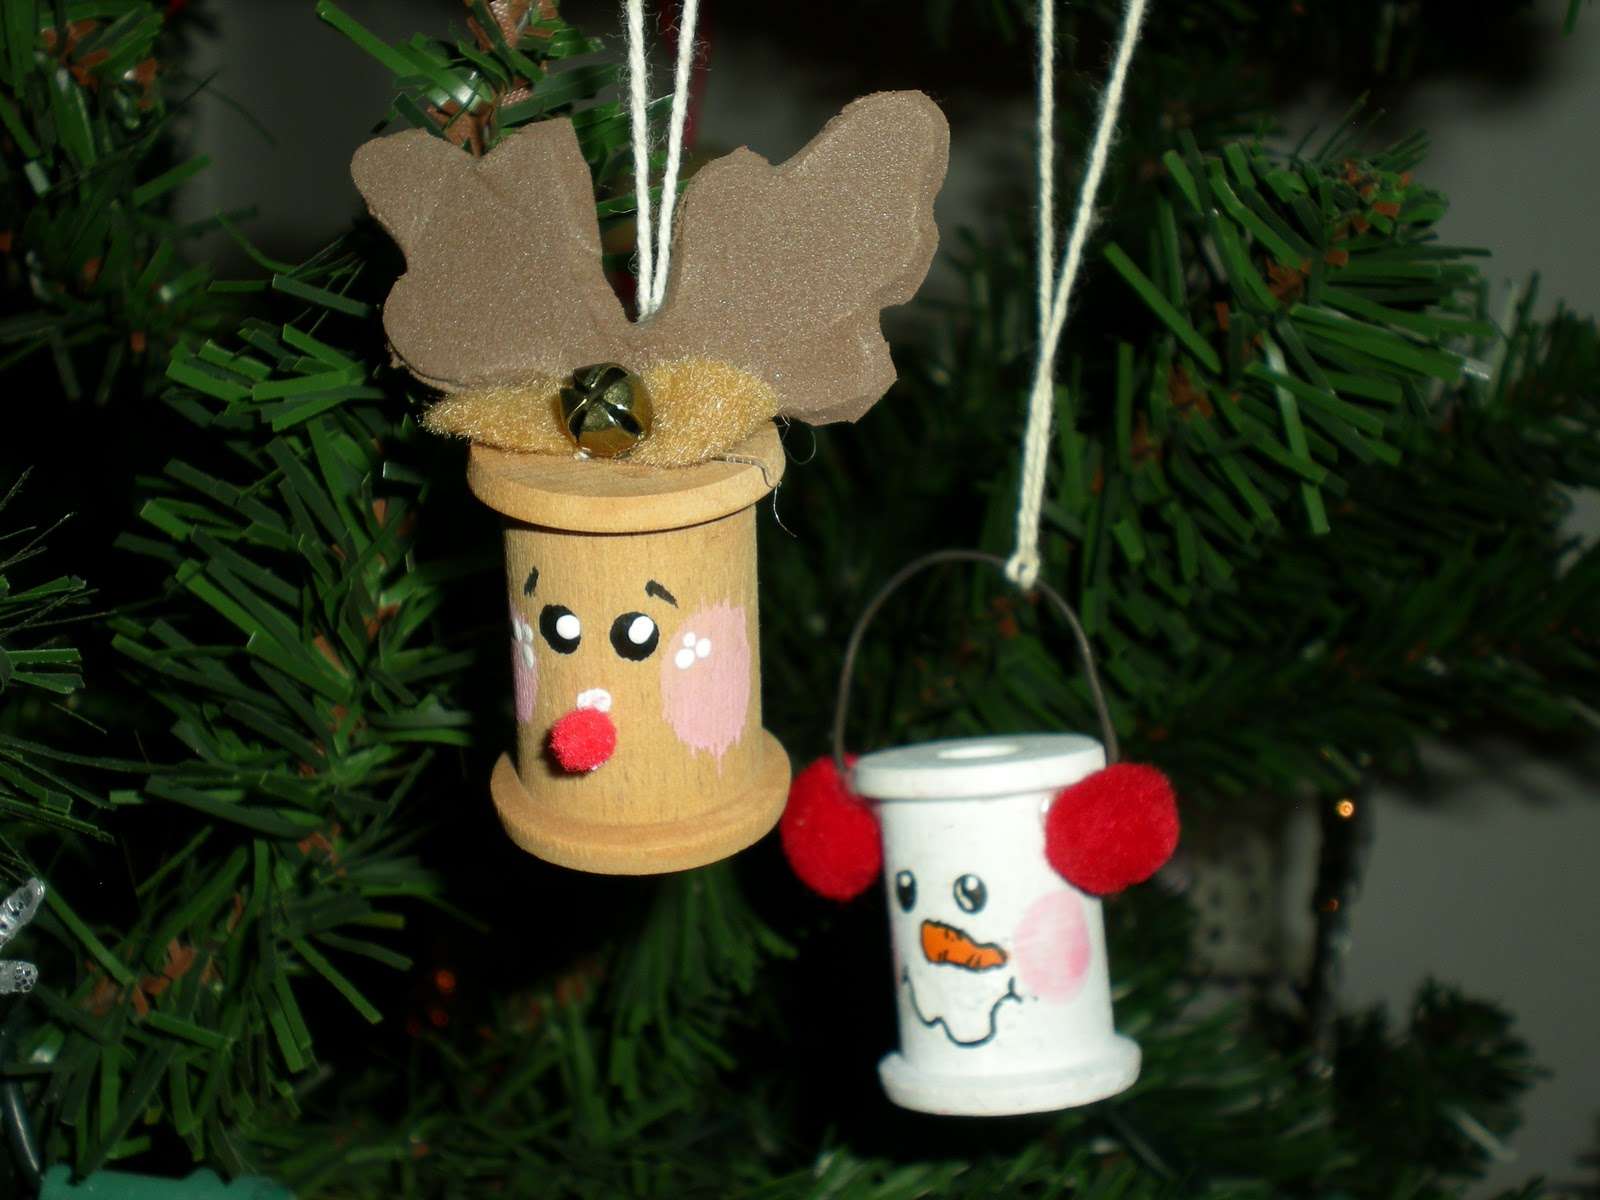 25 days of christmas crafts day 5 homemade christmas Christmas crafts for kids to make at home